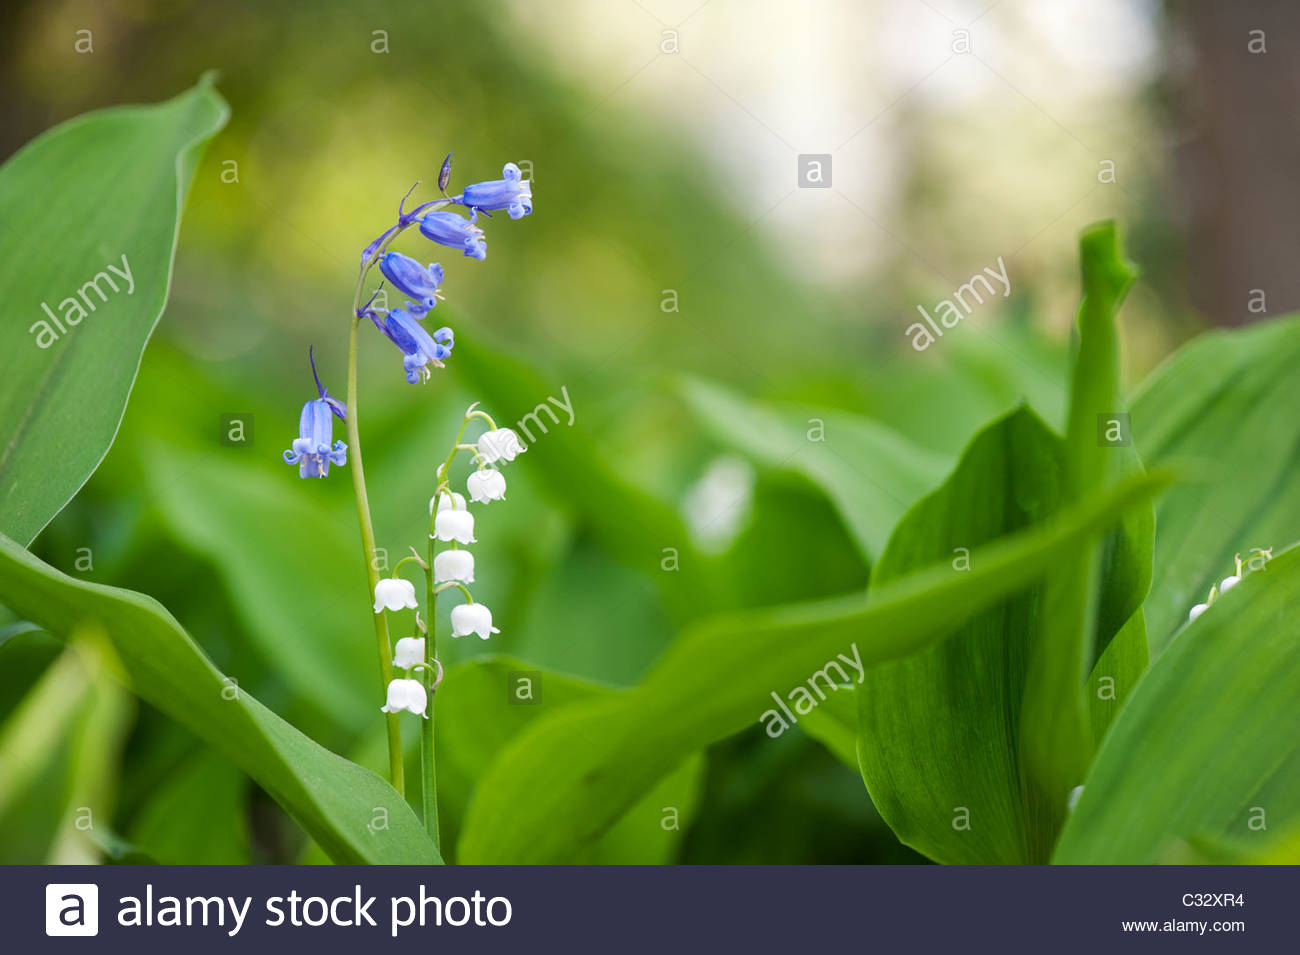 Bluebells and lily of the valley flowers in spring uk stock photo bluebells and lily of the valley flowers in spring uk izmirmasajfo Images